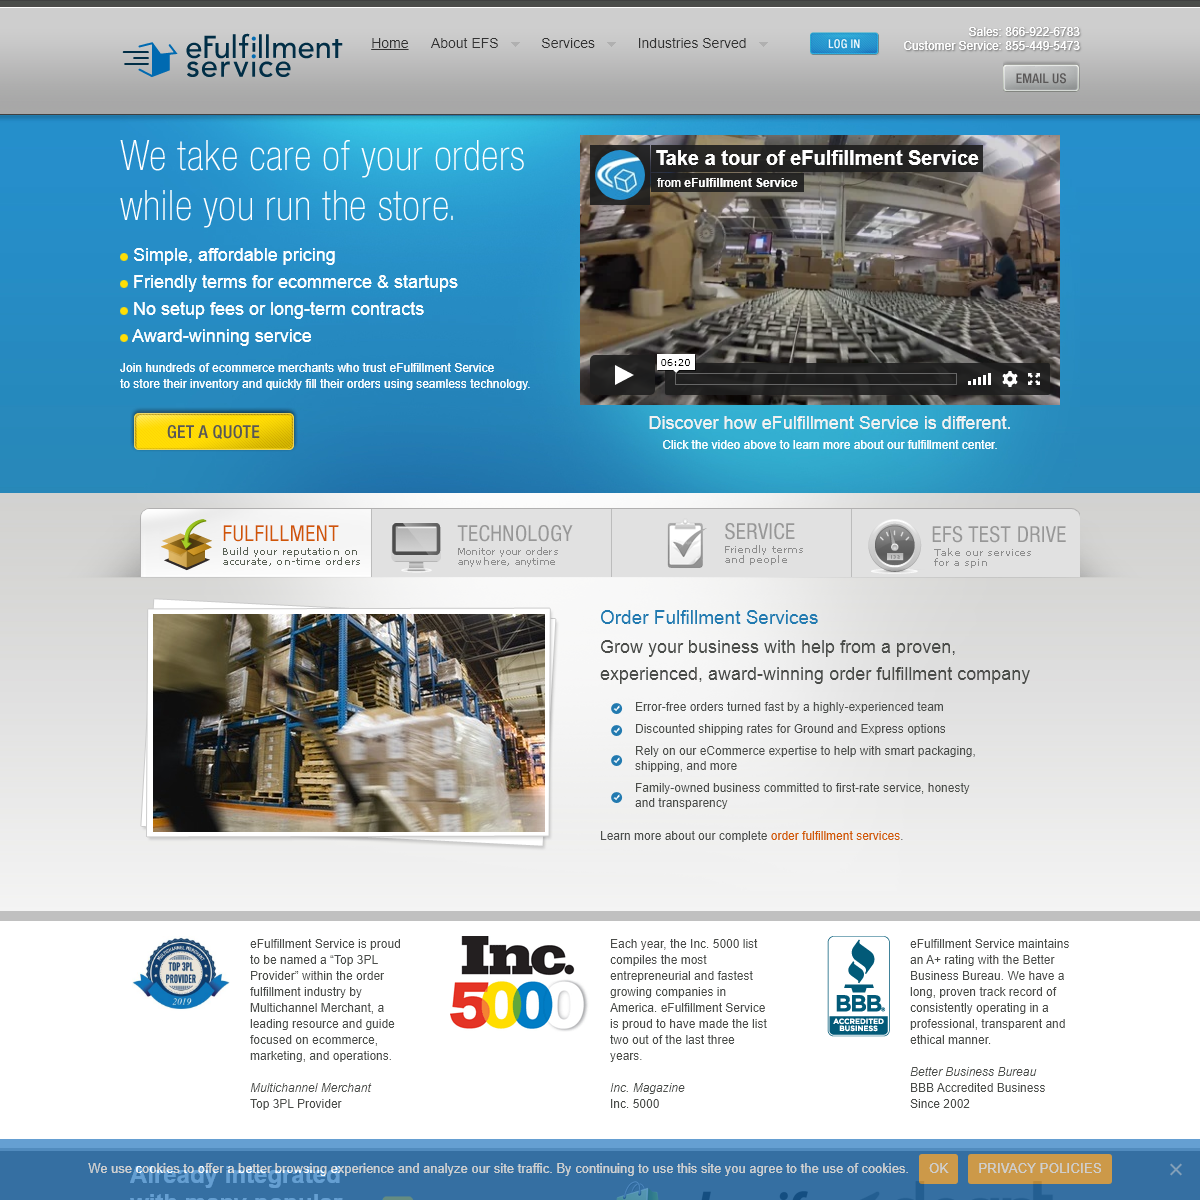 Product Fulfillment Services - eCommerce Order Fulfillment House - eFulfillment Service, Inc.